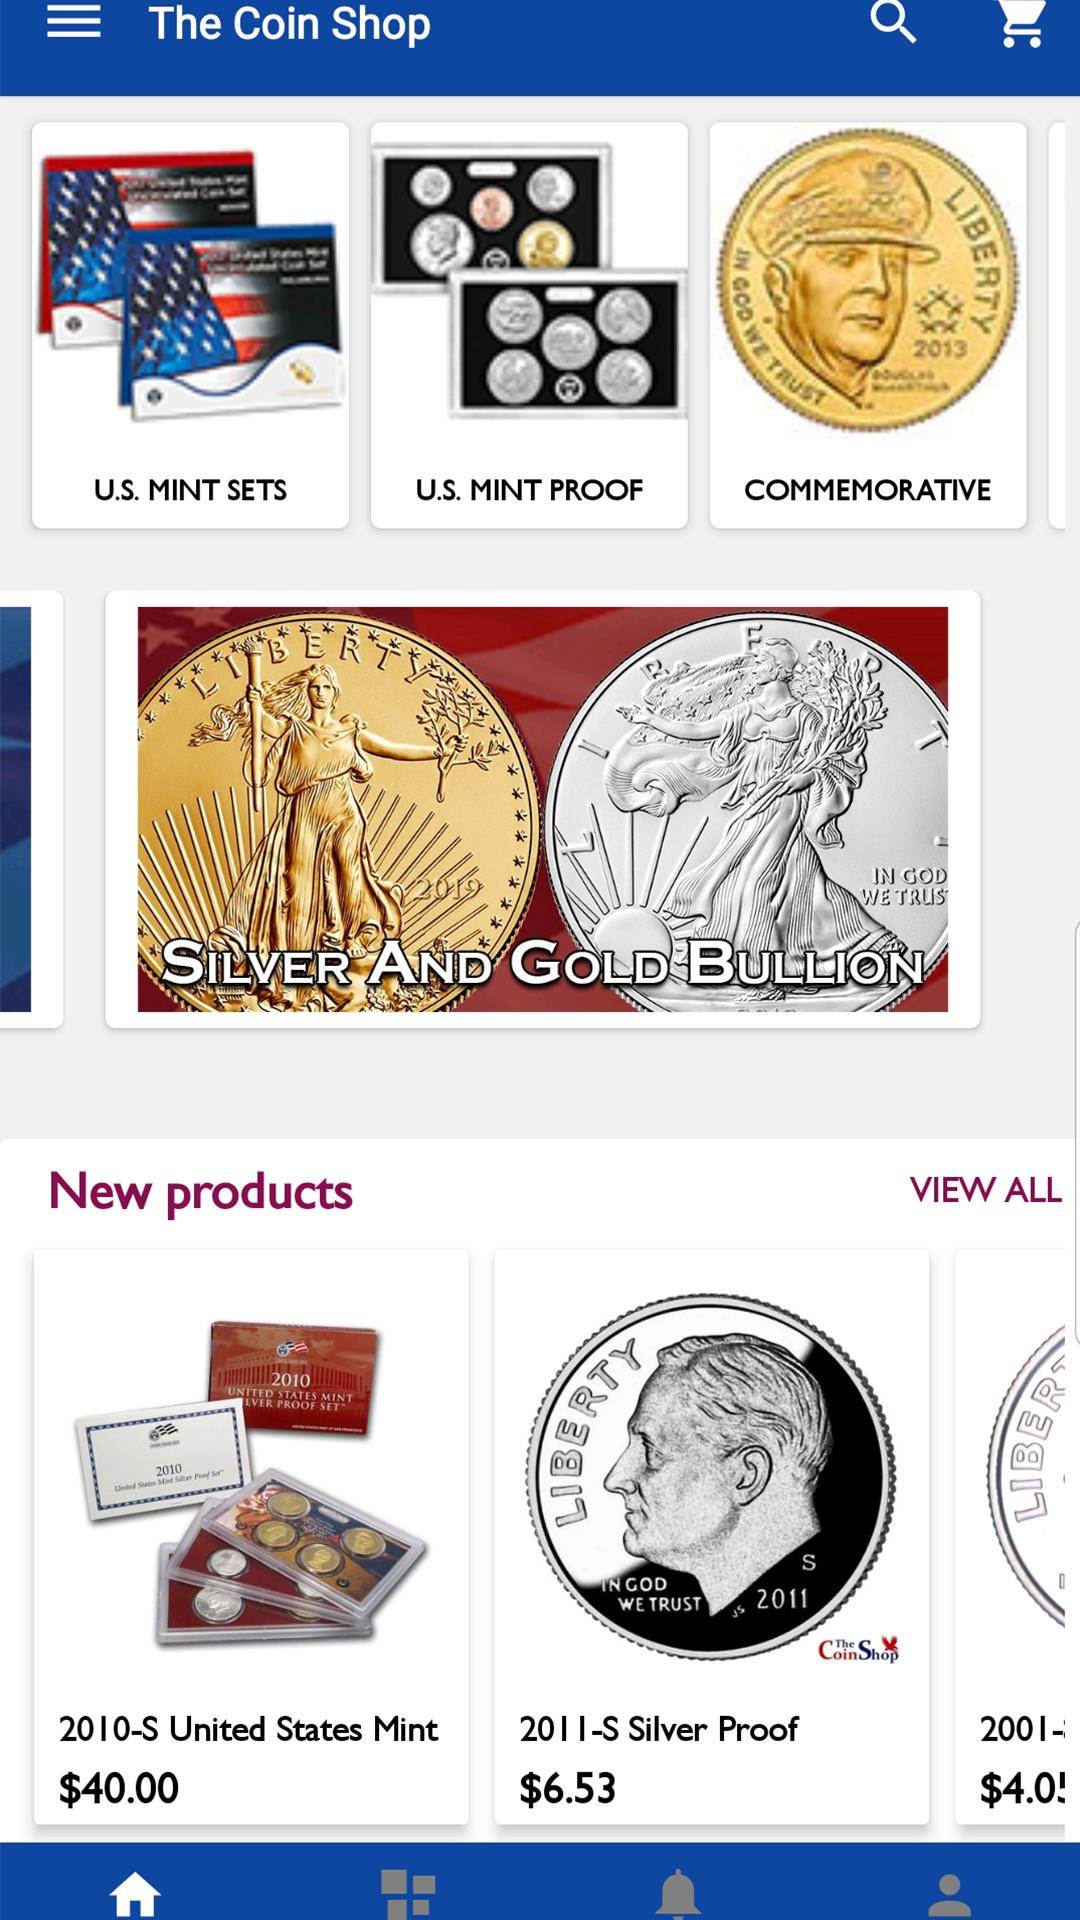 The coin shop online